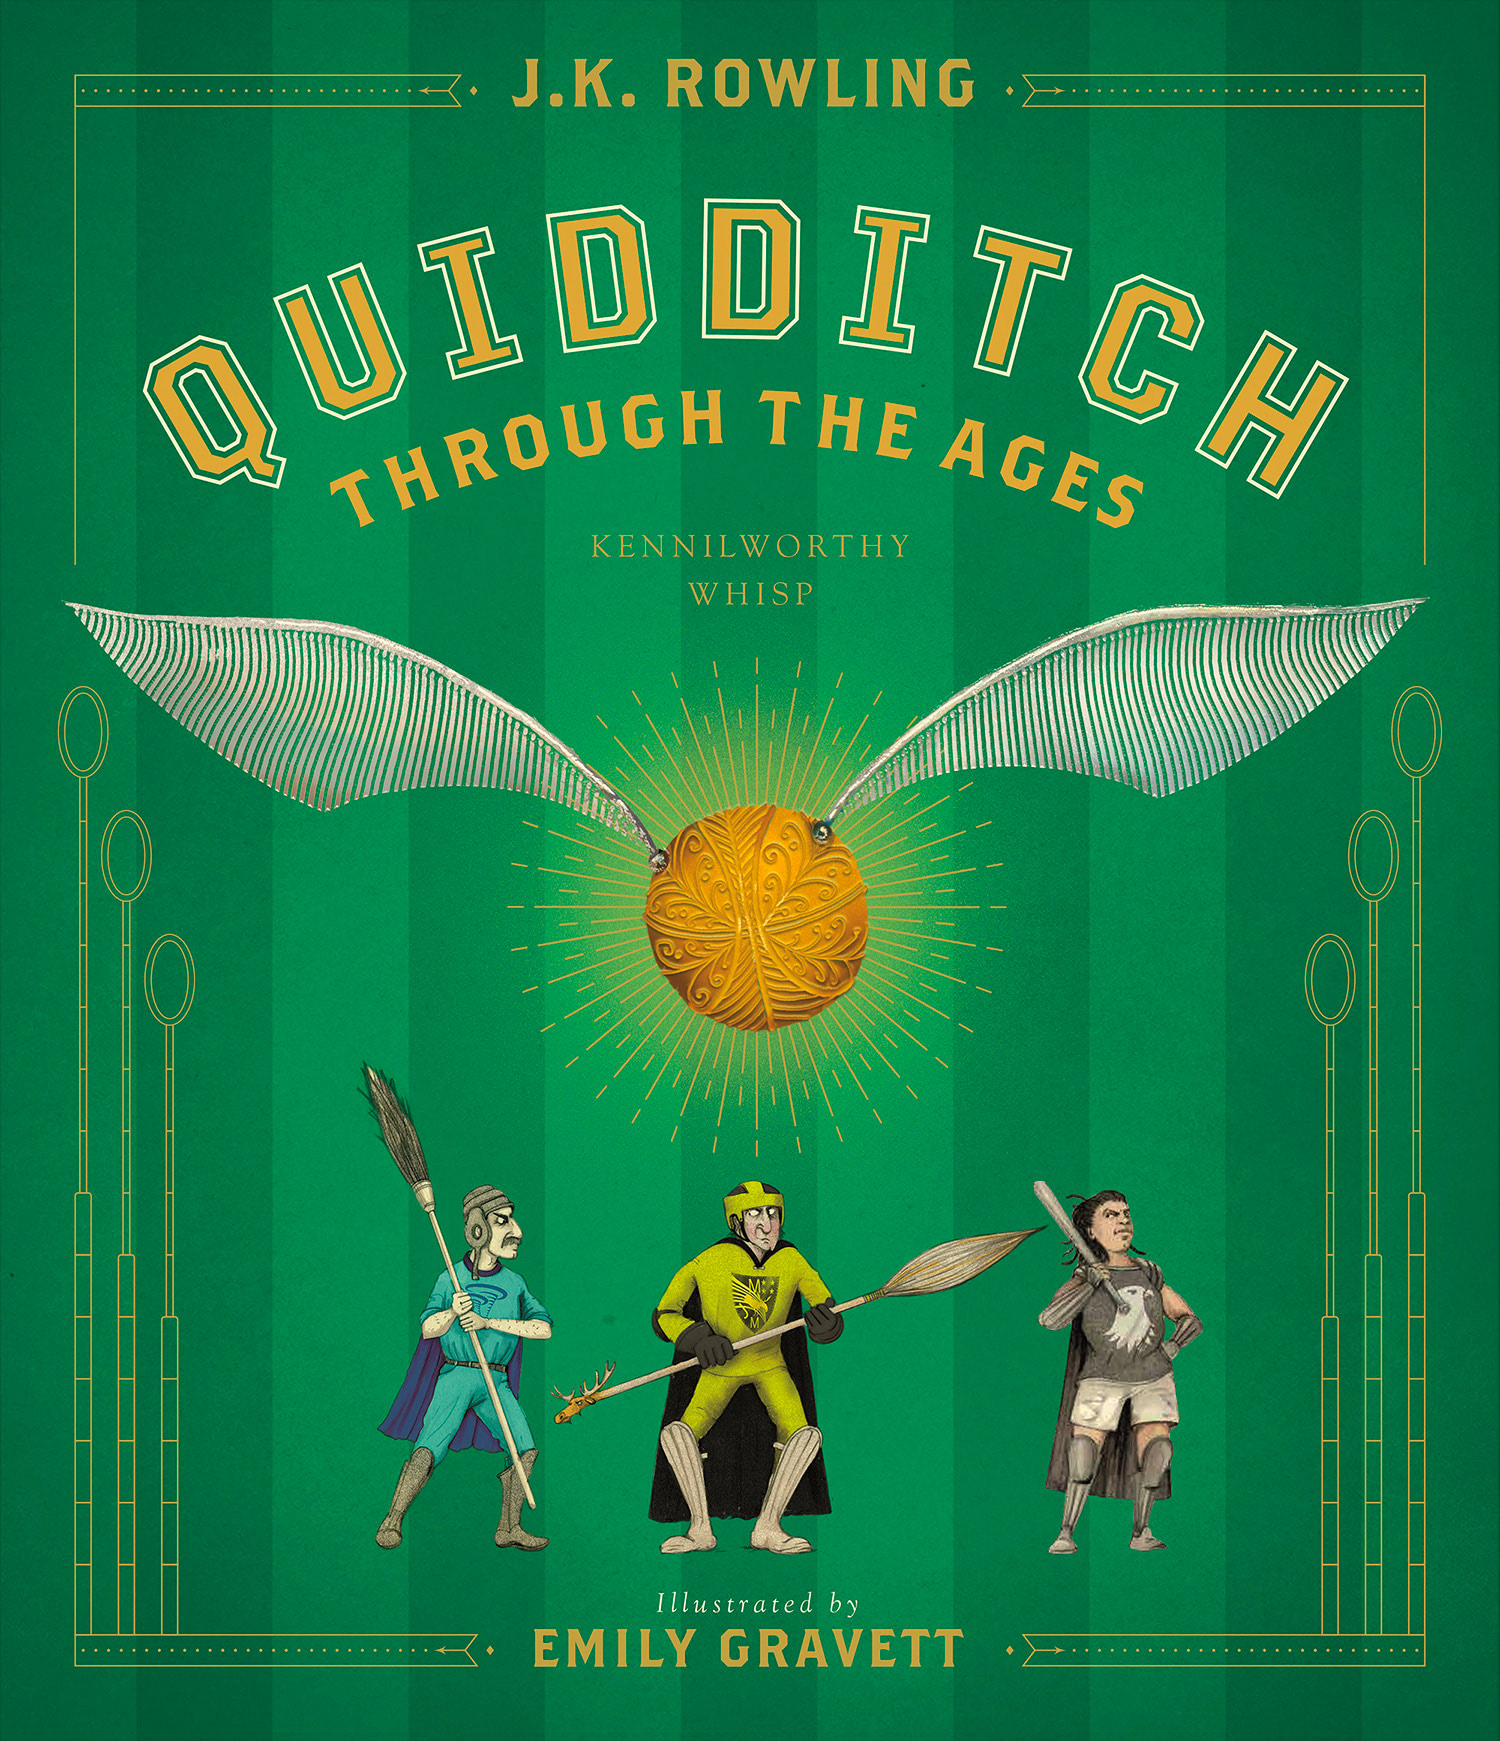 'Quidditch Through the Ages' illustrated edition (US)